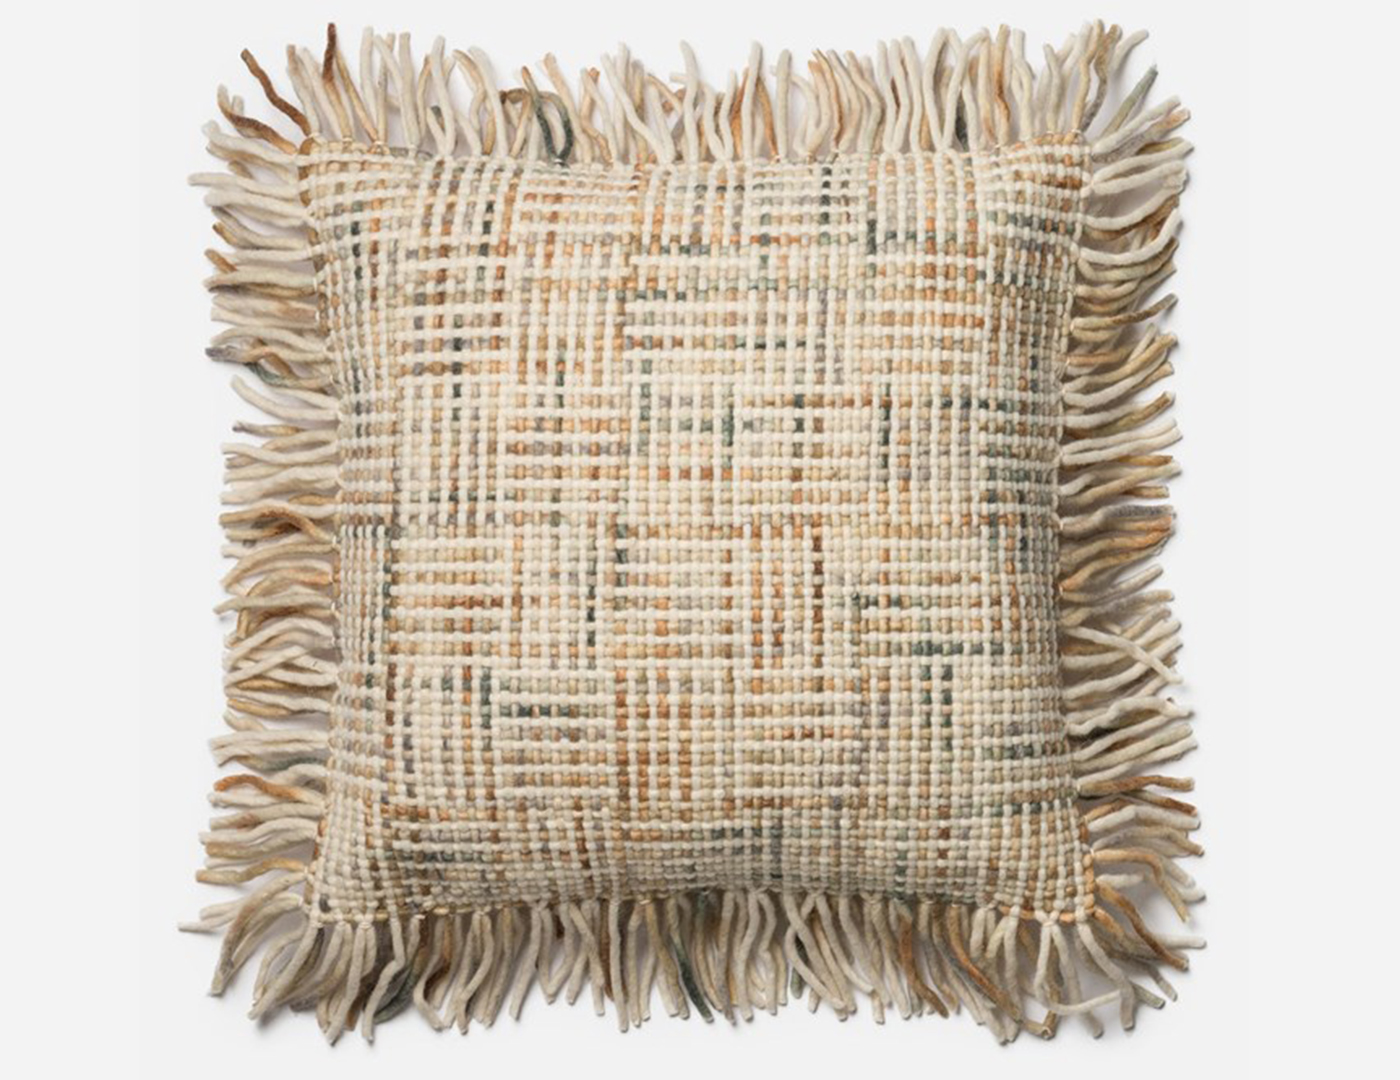 Fringe Woven Tan and Gray Decorative Pillow